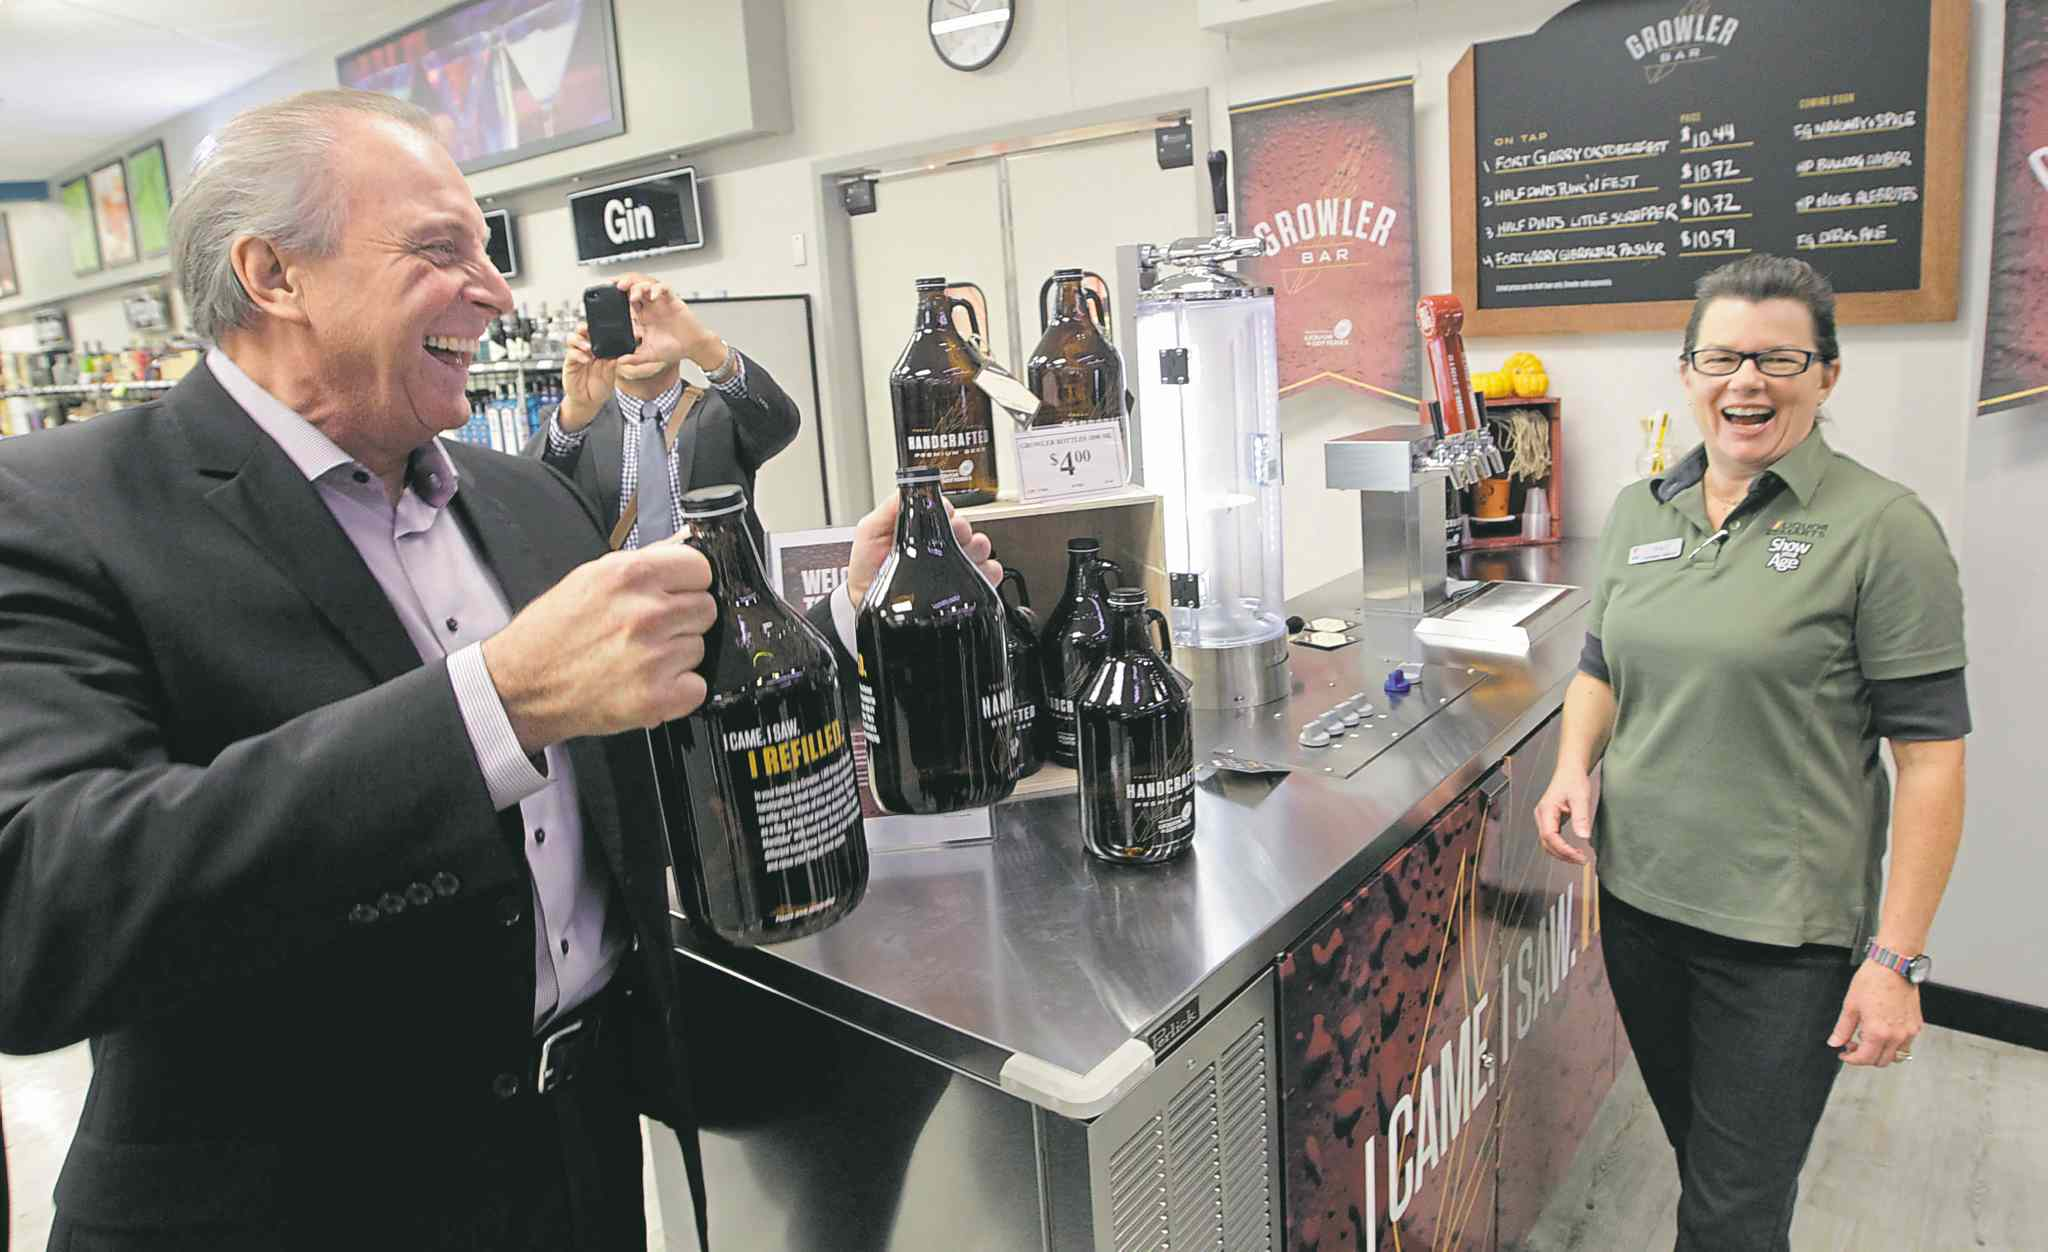 The MGEU says Manitobans are happy liquor sales are controlled by the provincial government. Above, Ron Lemieux, minister responsible for Liquor and Lotteries, yuks it up with Liquor Mart employee Tracy Jones at last year's launch of in-store Growler bars.